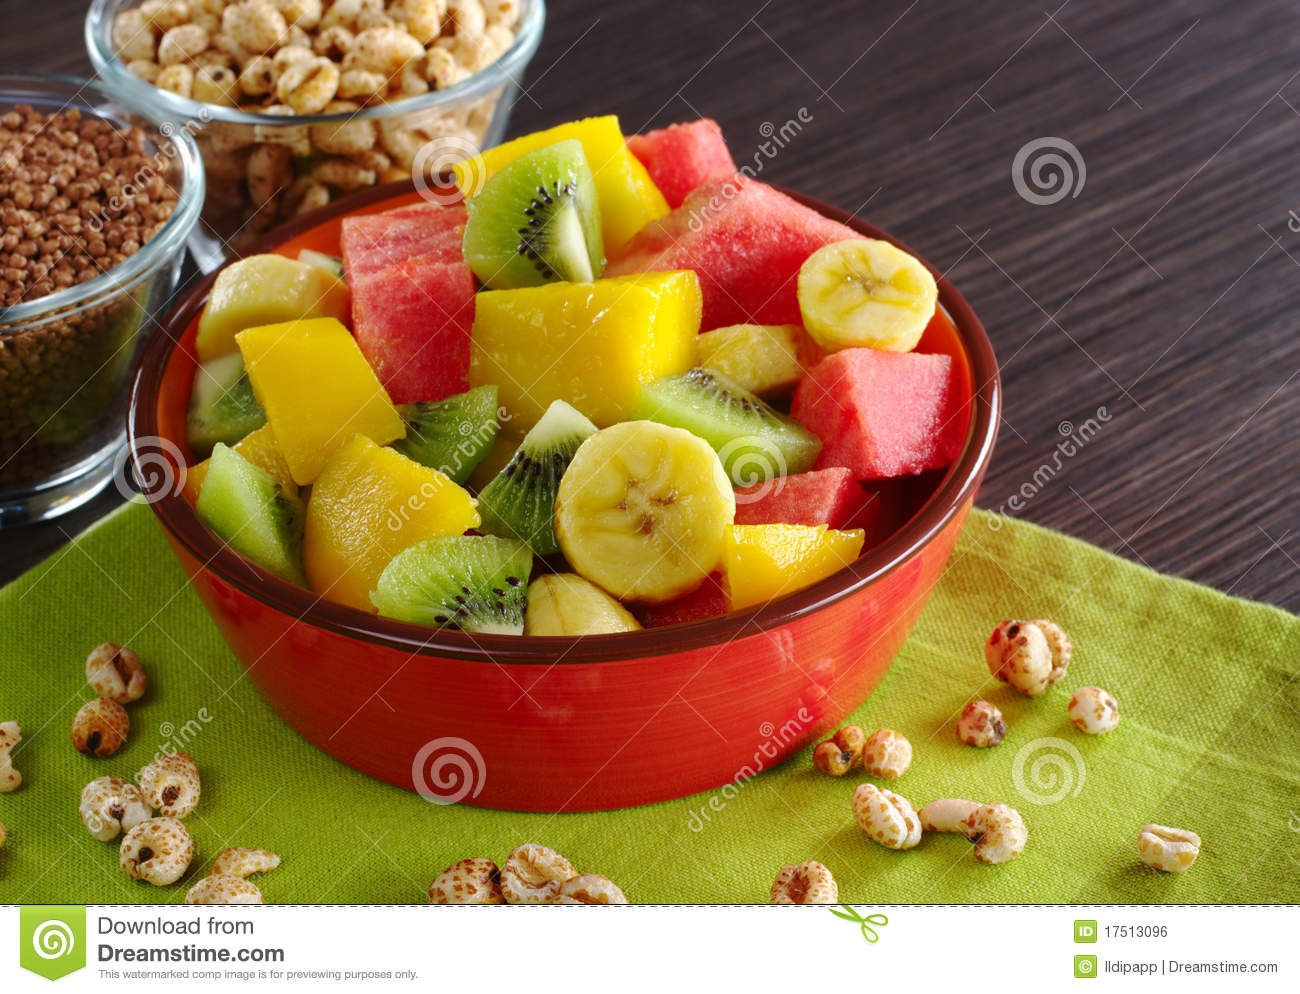 Royalty Free Stock Image: Fruit Salad with Cereals